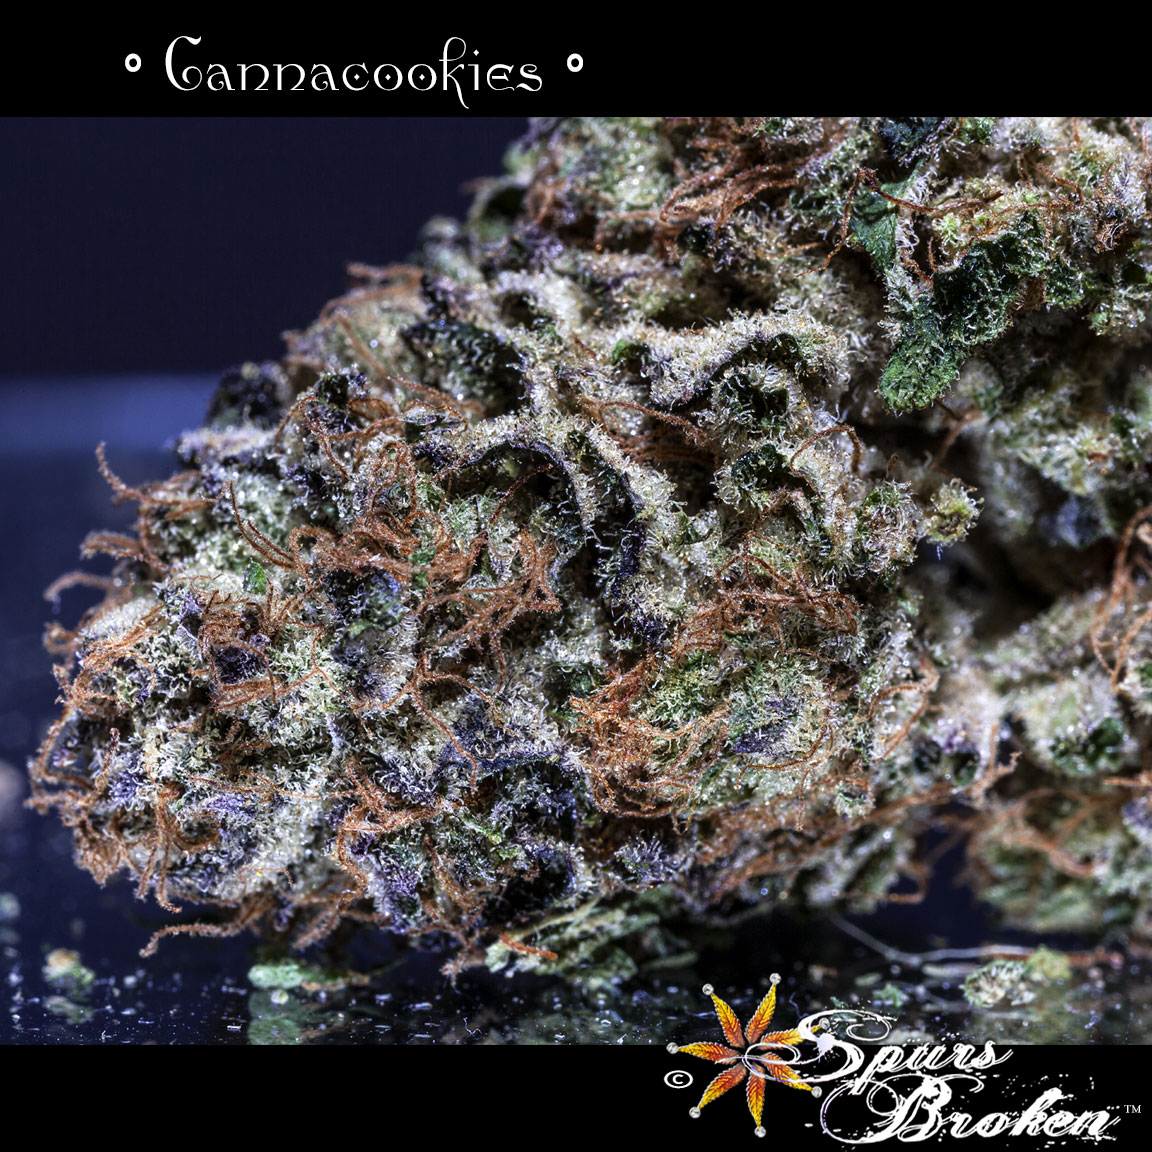 Cannacookies -Cannabis Macro Photography by Spurs Broken (Robert R. Sanders)